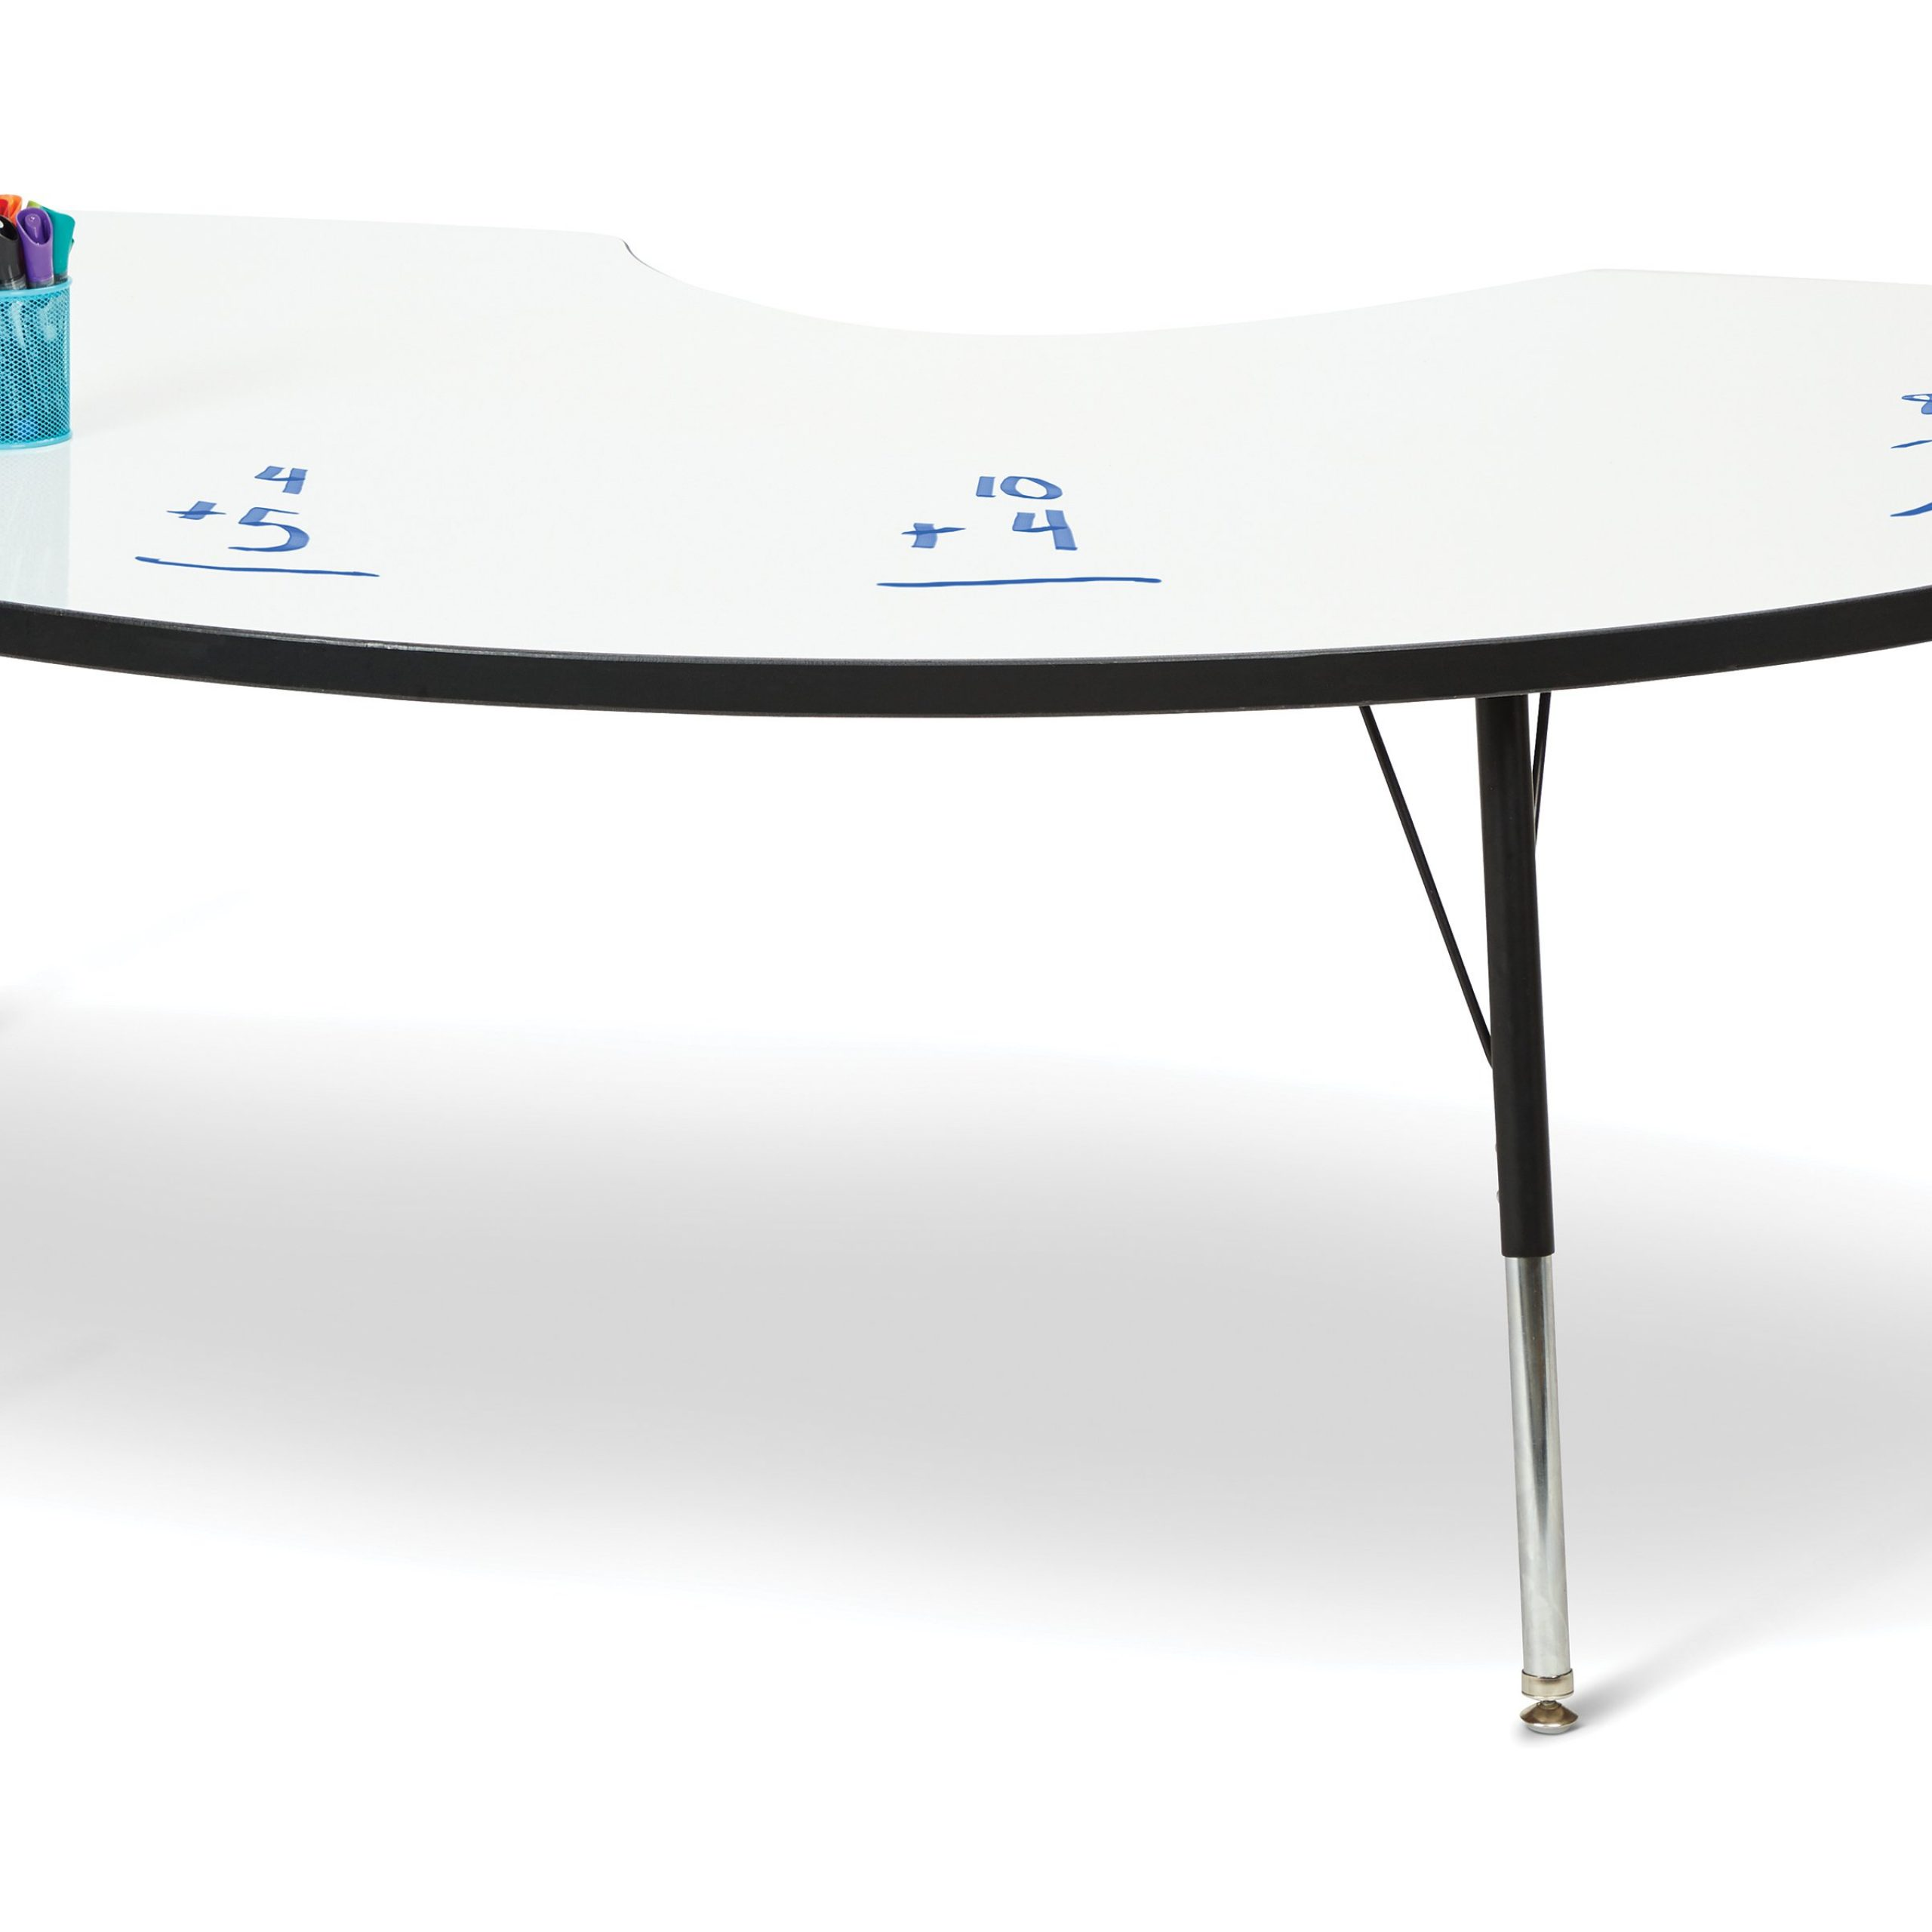 """Berries Write N Wipe Preschool Tables – Play With A Purpose Intended For Most Recently Released Elite Rectangle 48"""" L X 24"""" W Tables (View 6 of 15)"""